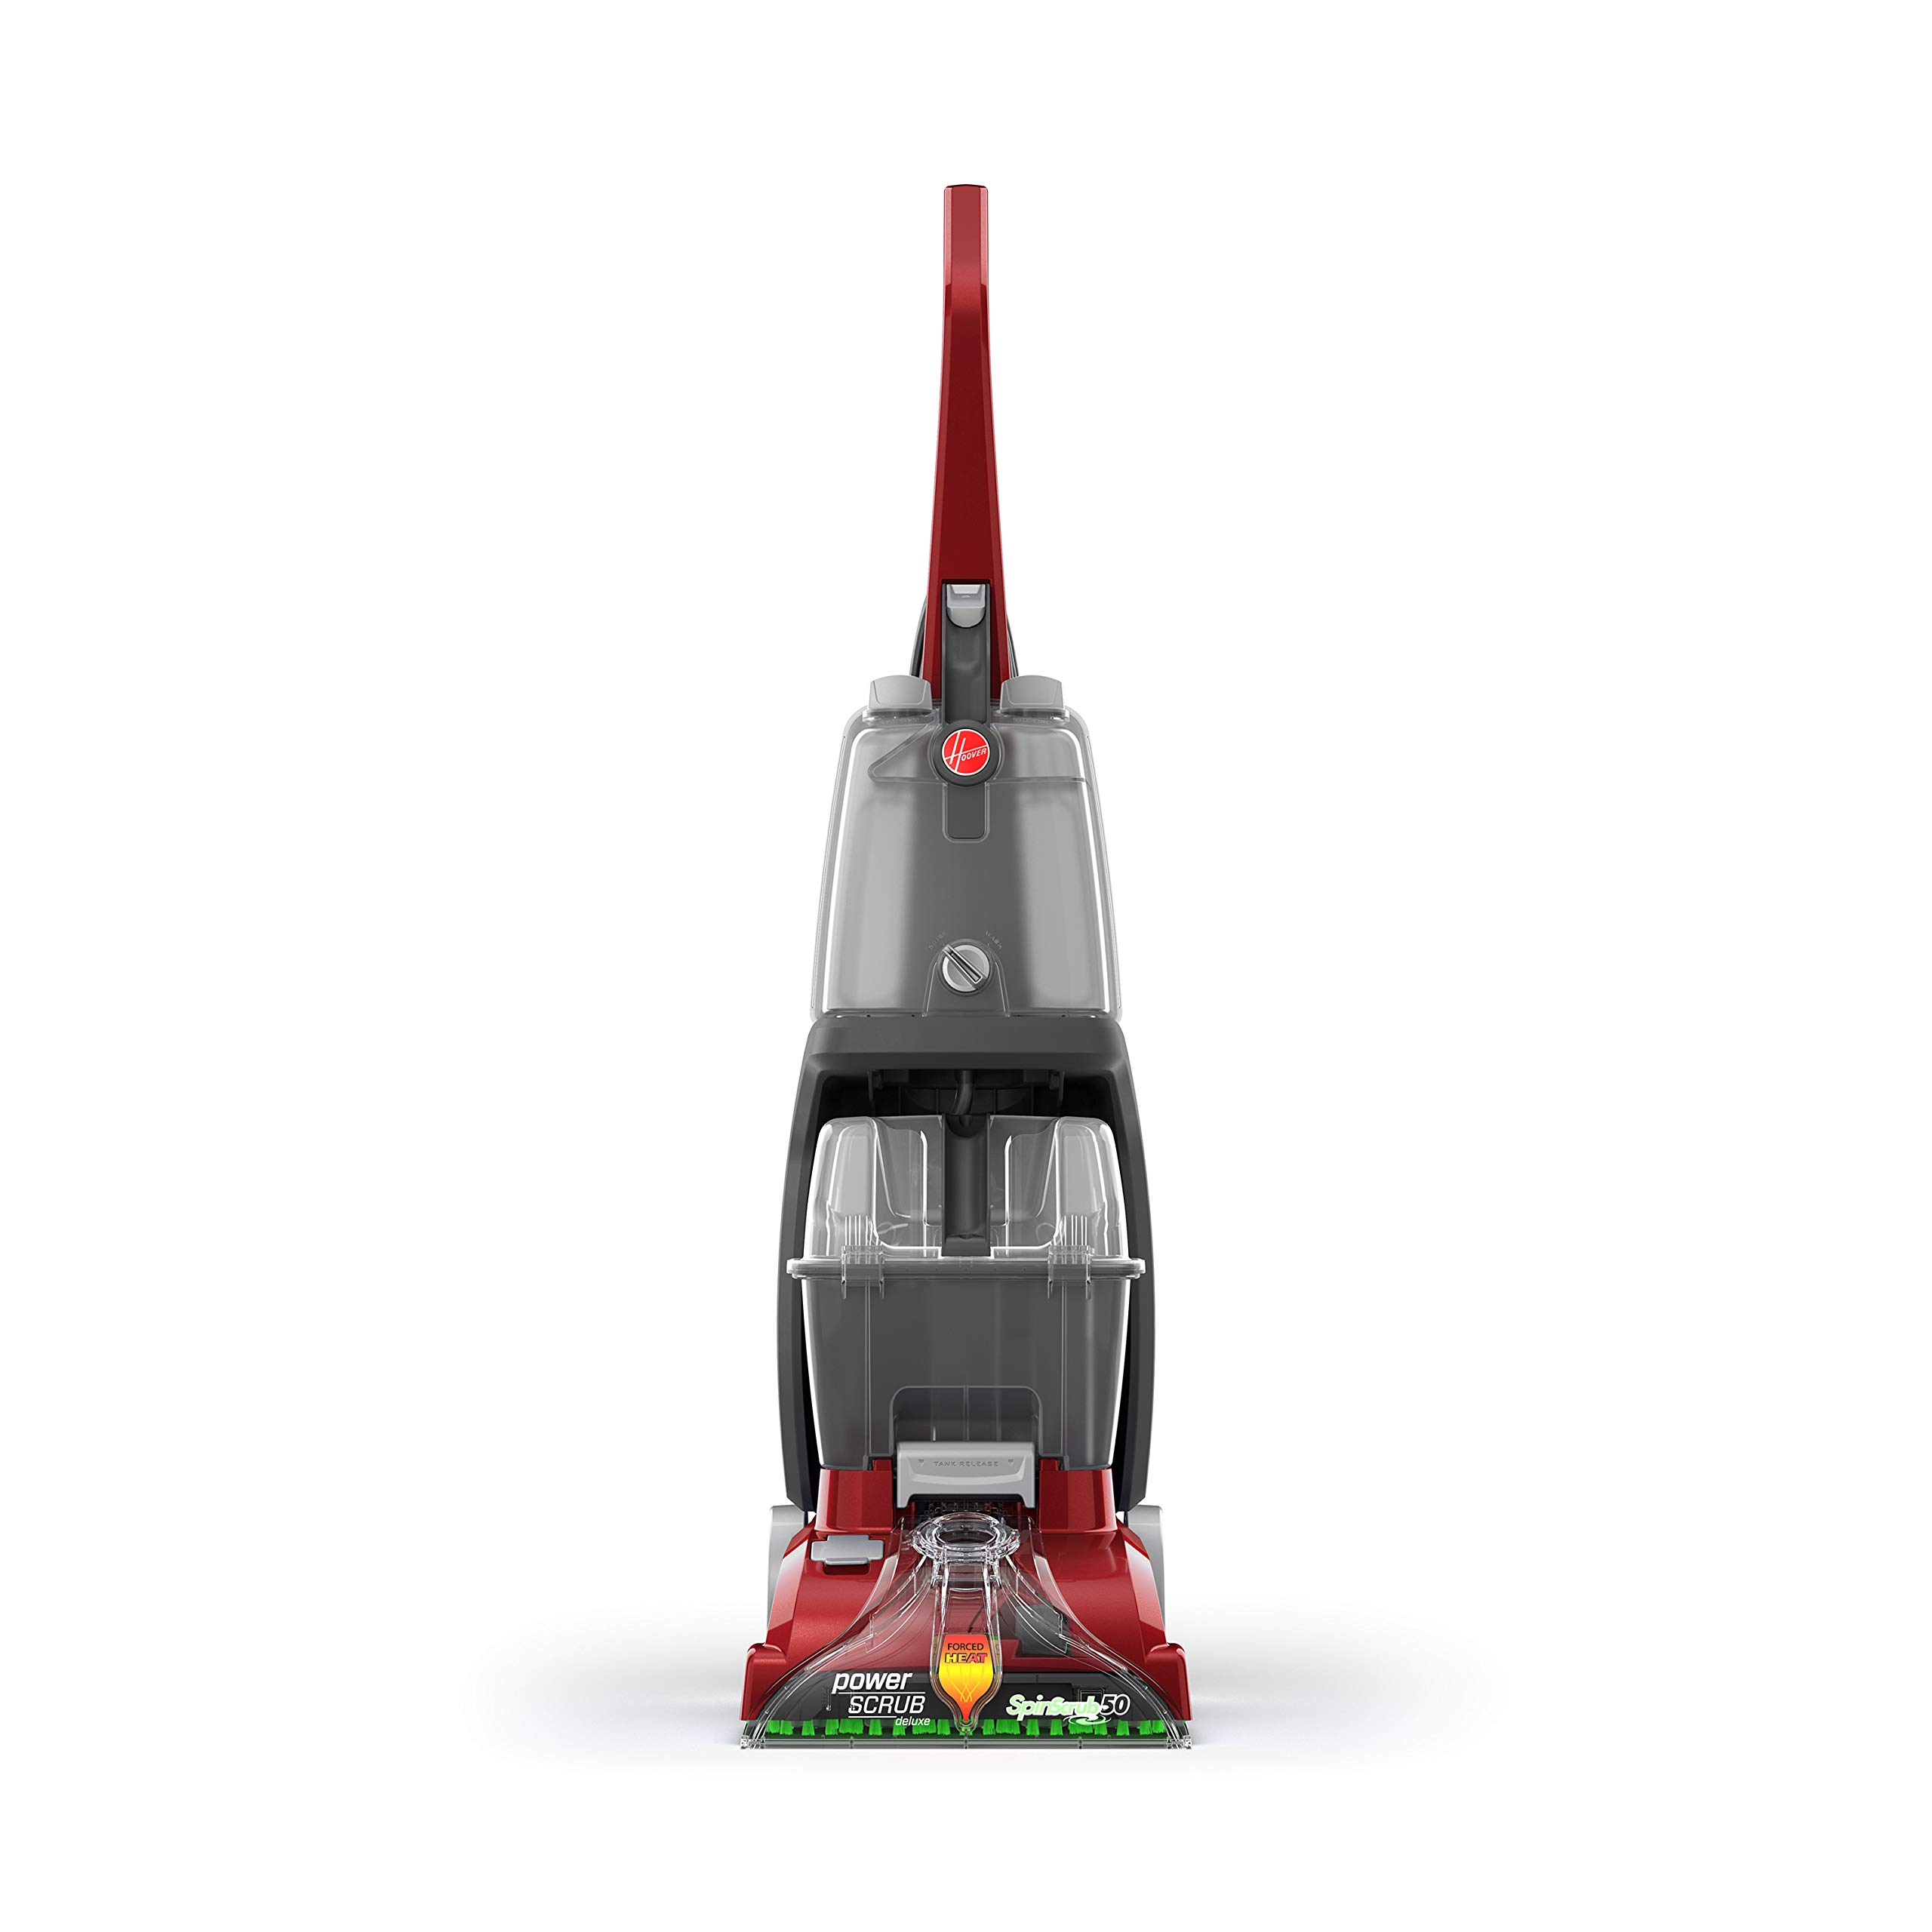 Hoover Power Scrub Cleaner Machine